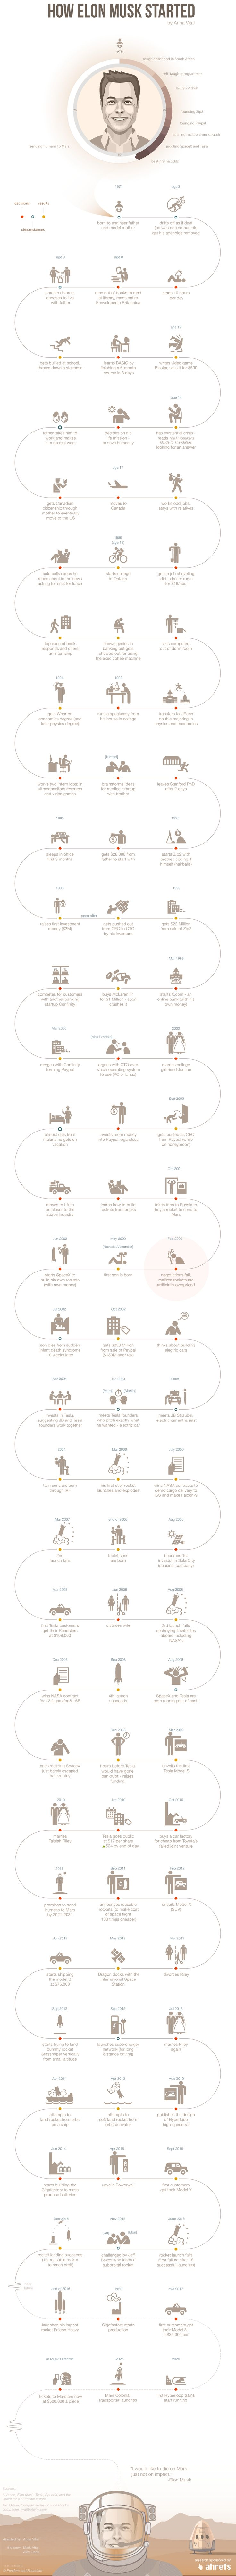 Infographic on life story of Tesla CEO Elon Musk, for more, visit: http://evannex.com/blogs/news/76736325-elon-musk-and-his-impact-on-tesla-motors-infographic